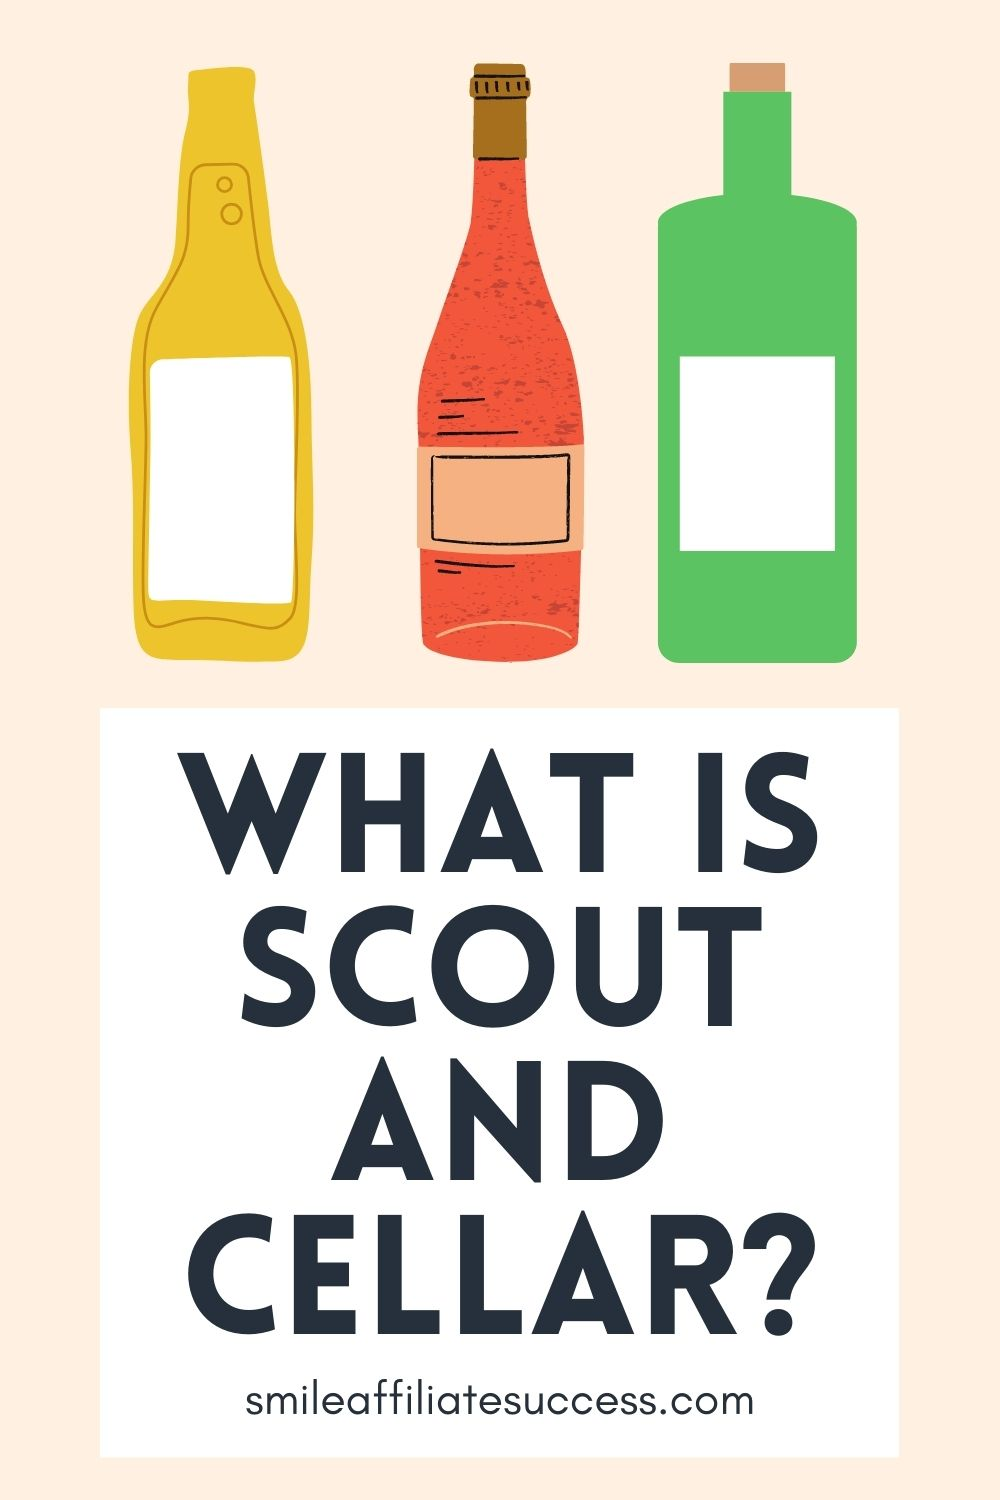 What Is Scout And Cellar?